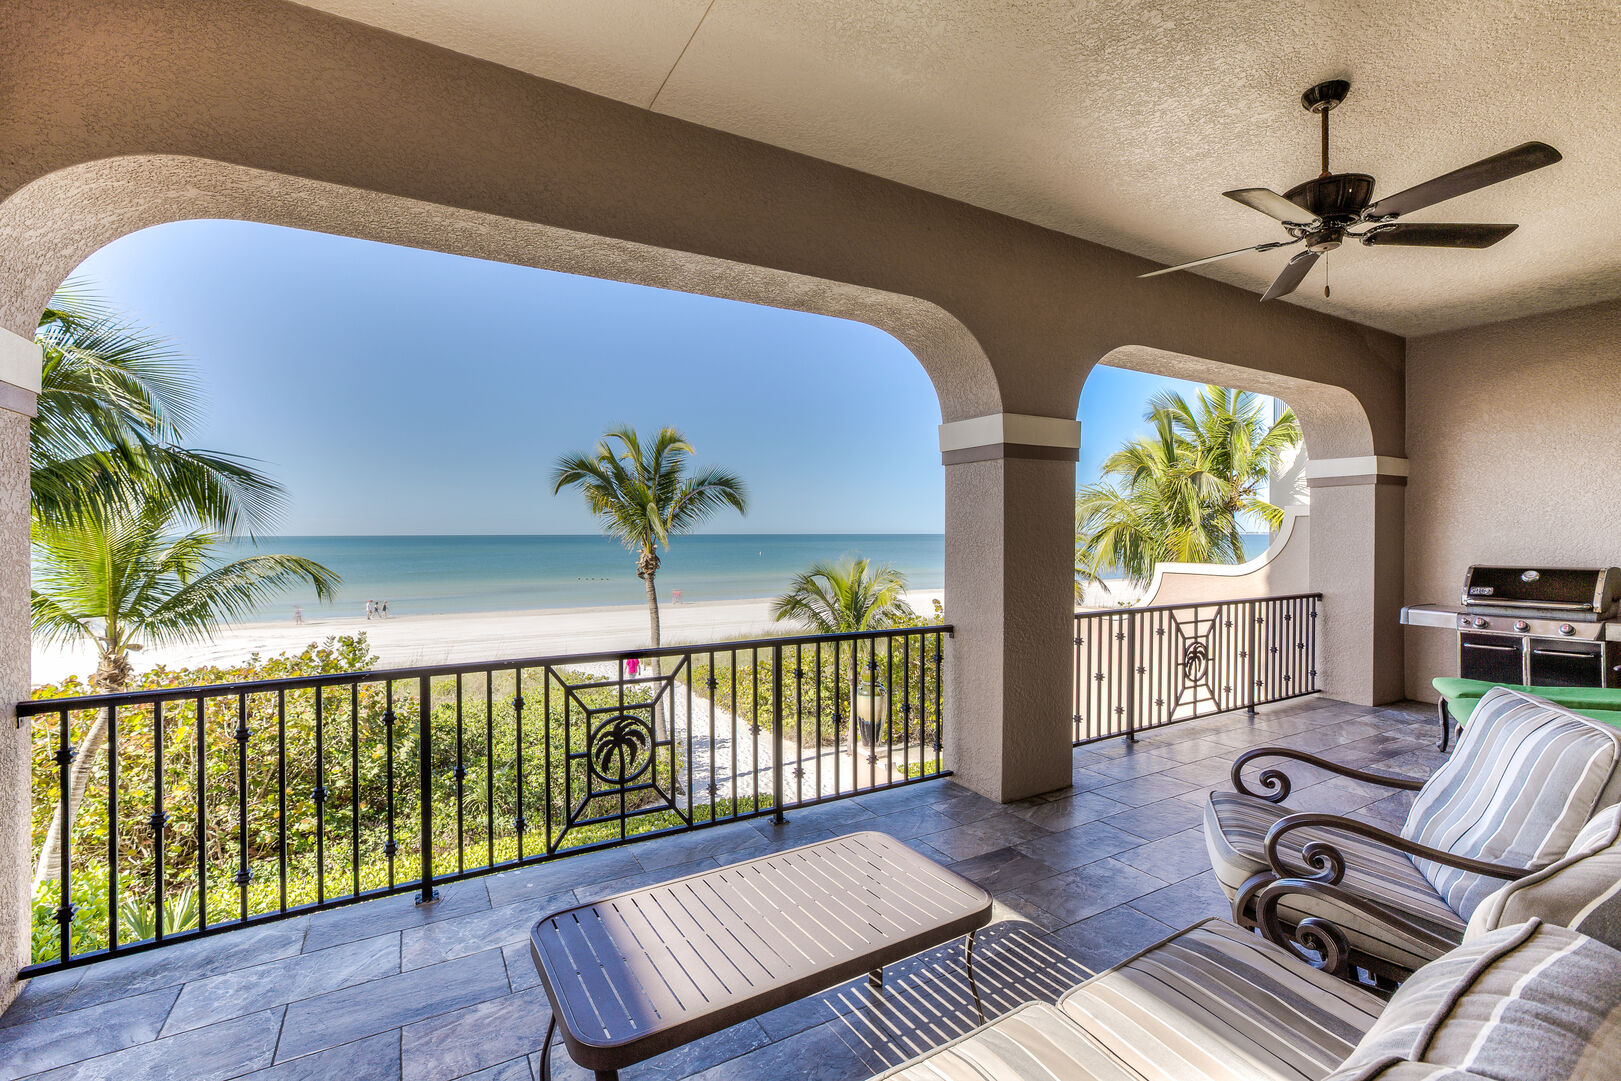 Balcony with seating and grill in our Fort Myers vacation home rental